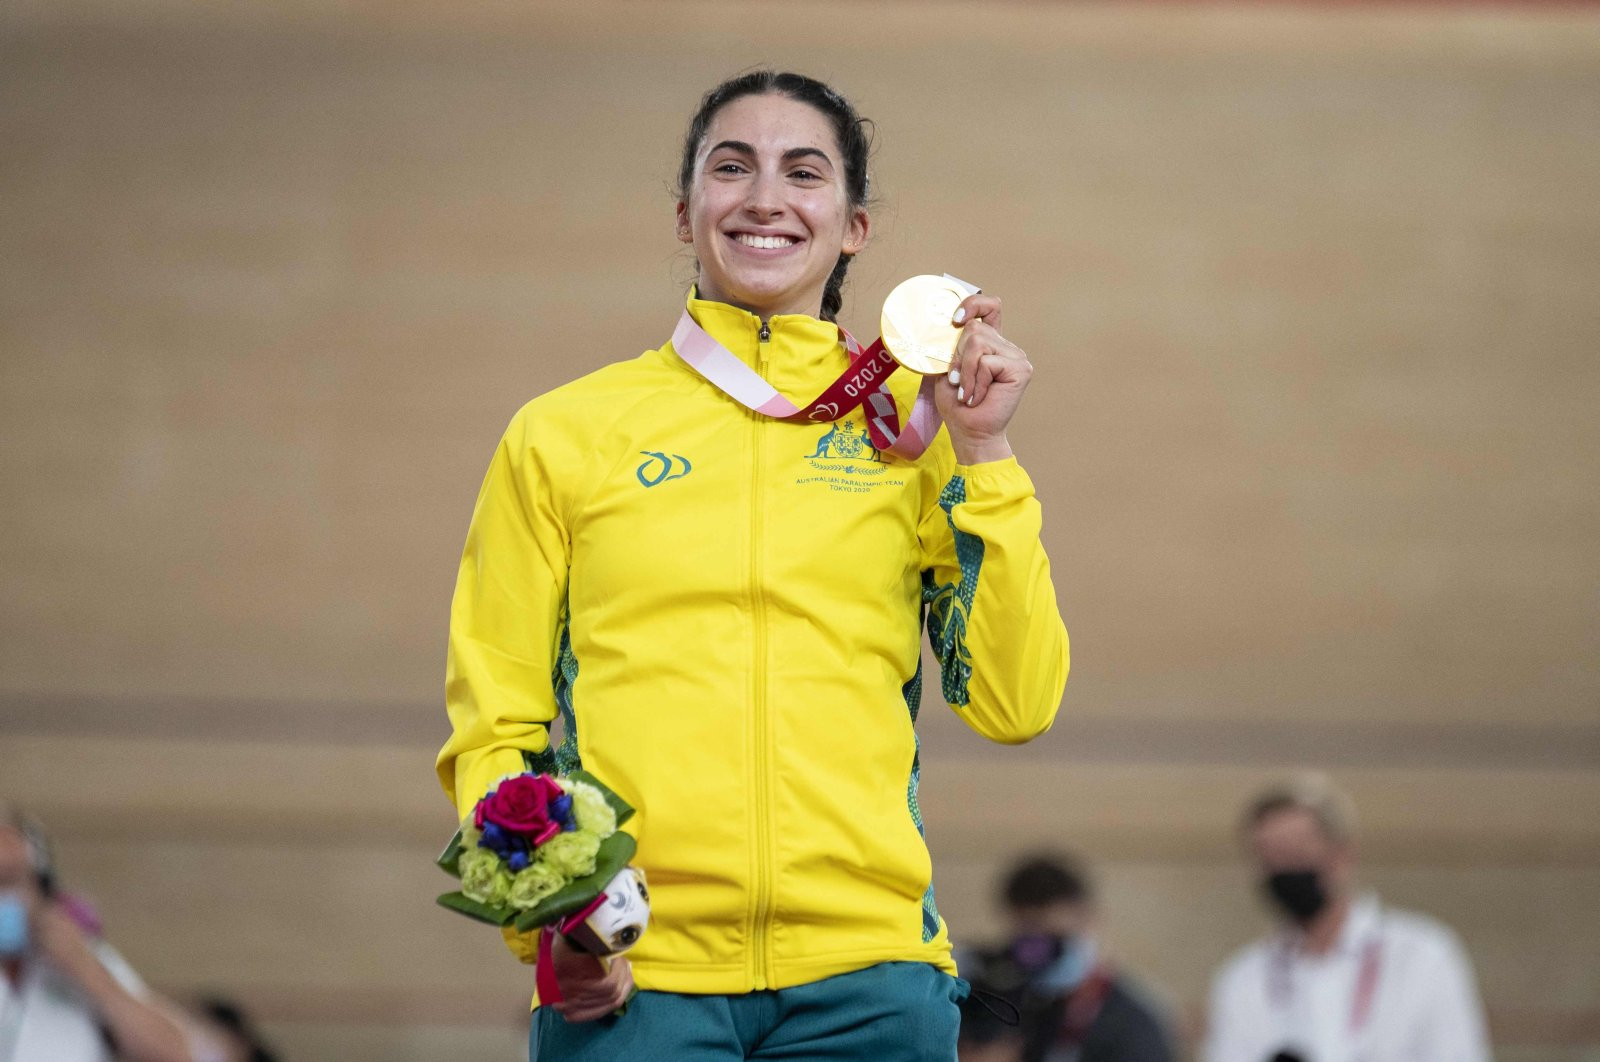 Gold medallist Australia's Paige Greco poses with her medal on the podium after the women's C1 3000m individual pursuit event during the Tokyo 2020 Paralympic Games at Izu Velodrome in Izu, Japan, Aug. 25, 2021. (AFP Photo)